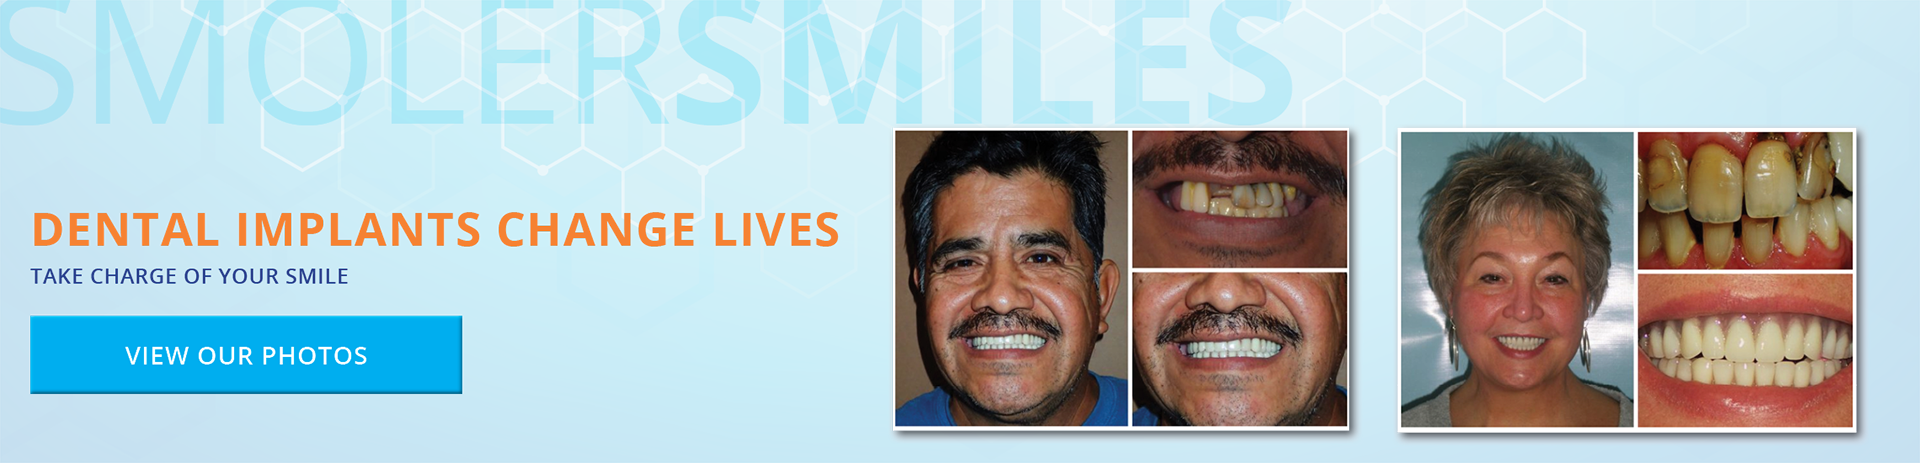 Dental Implants Change Lives